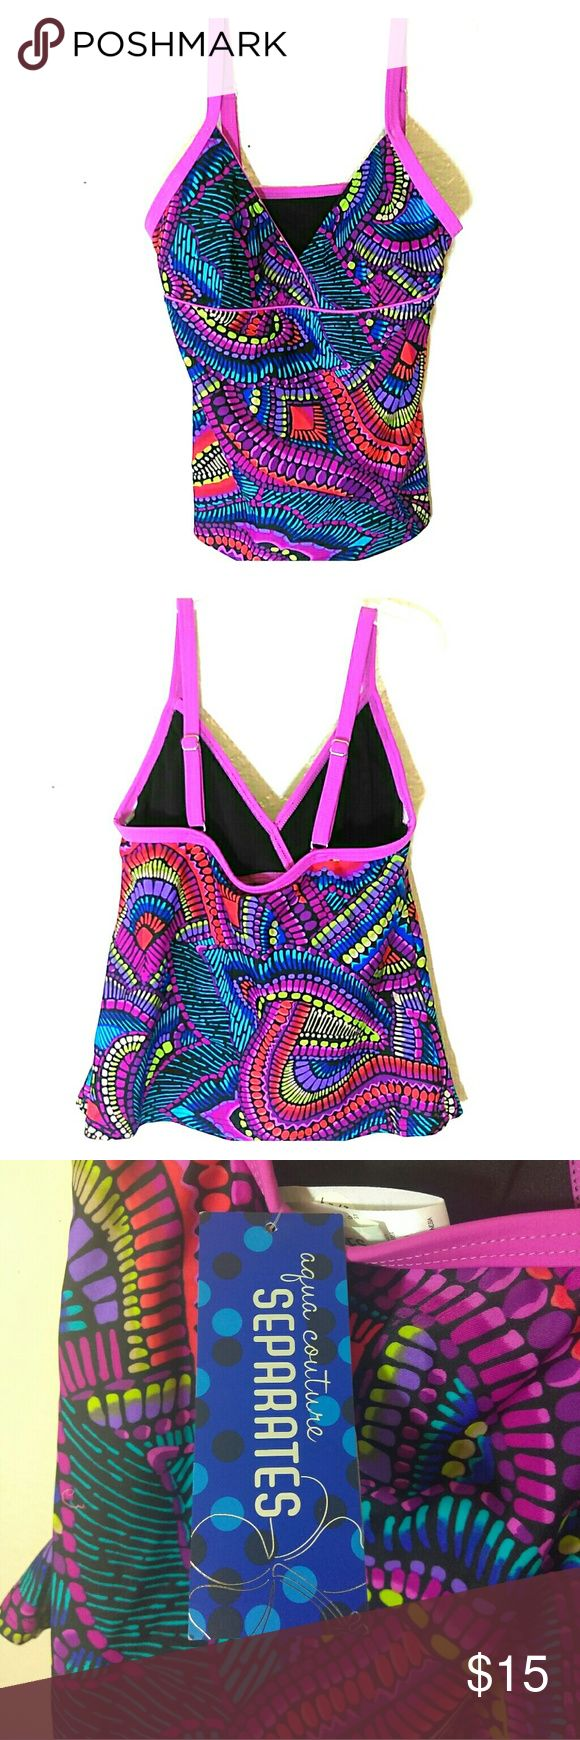 NWT Separates multicolored Tanktini size 6 Aqua Couture Separates Multicolored Tanktini size 6. Pink, blue, red, orange, green, purple and black colors. Made with 81% Nylon 19% spandex.  Very soft and comfortable, feels soft and lightweight. Adjustable straps for great fit. Stay cool and dry,  goes great with any solid or colored bottom. Great for summer days at the pool or beach.🌅❤ aqua couture separates Jeans Flare & Wide Leg